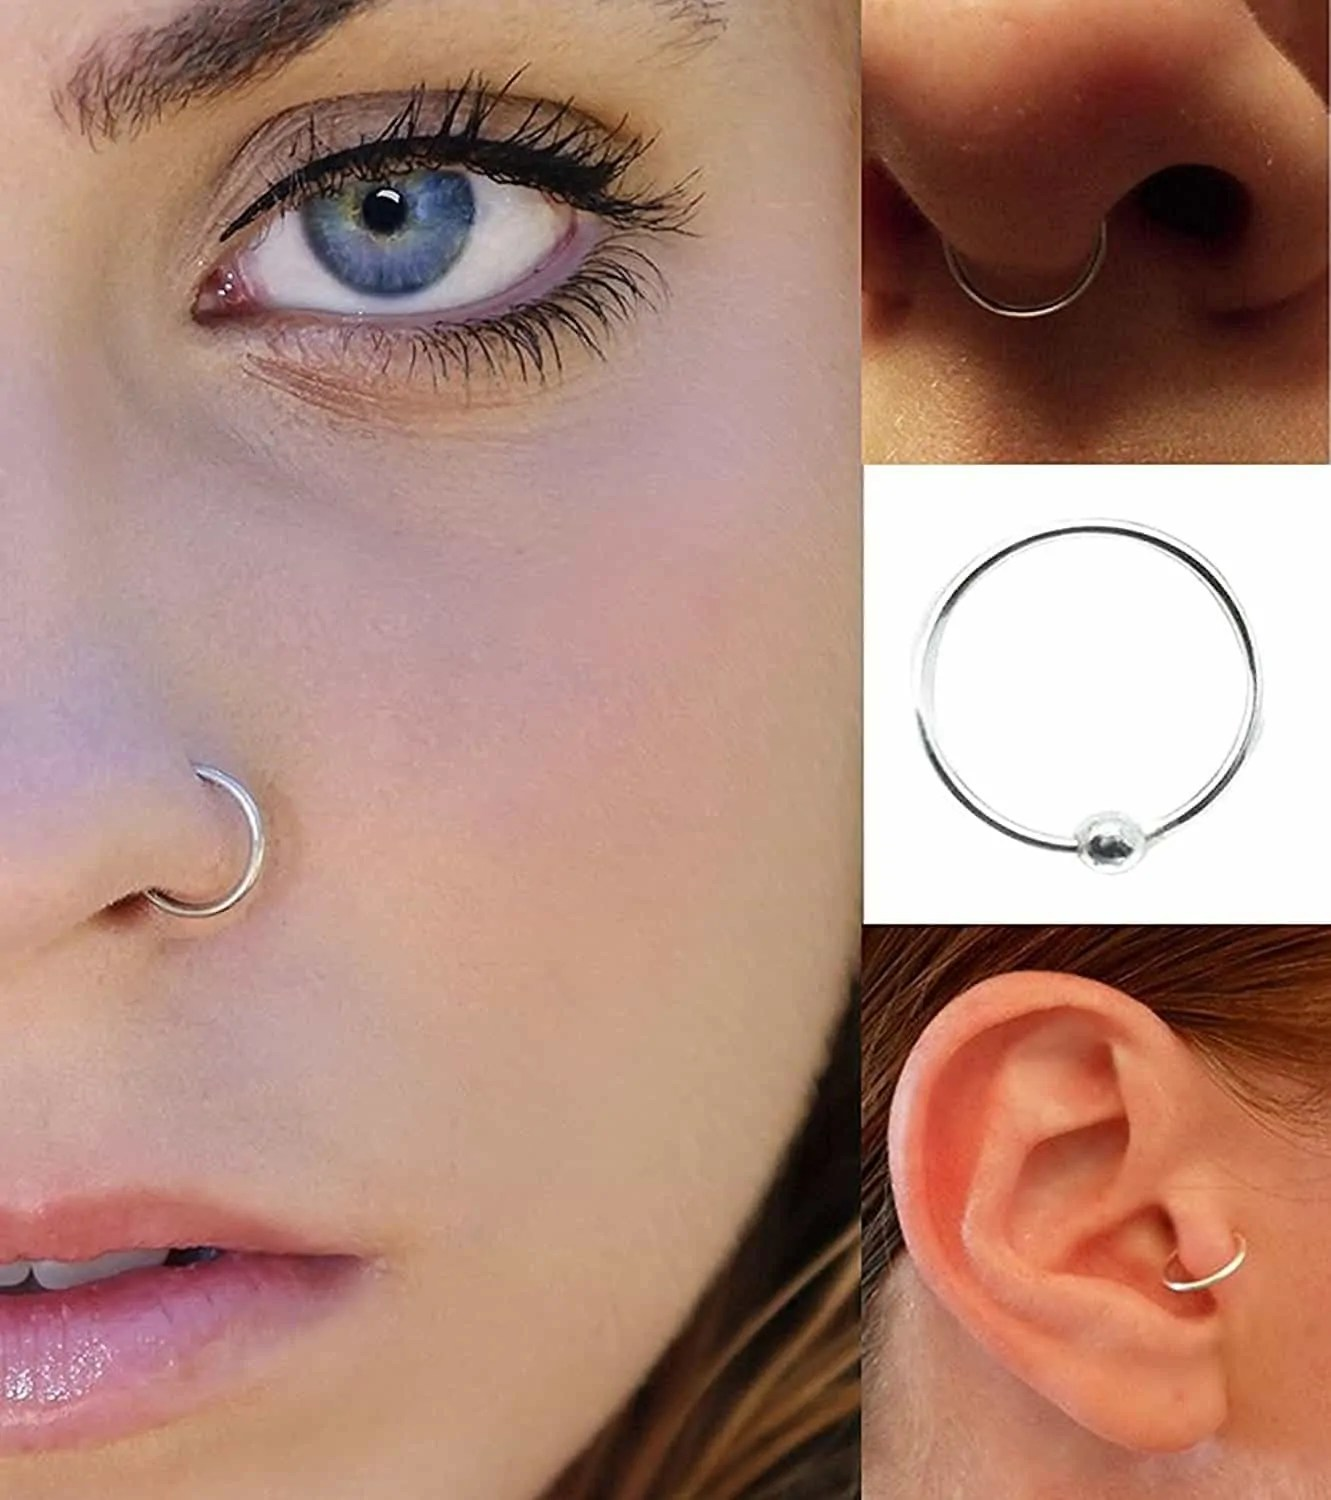 How I Use Body Adhesive For False Piercing Look Skin Glue Uses